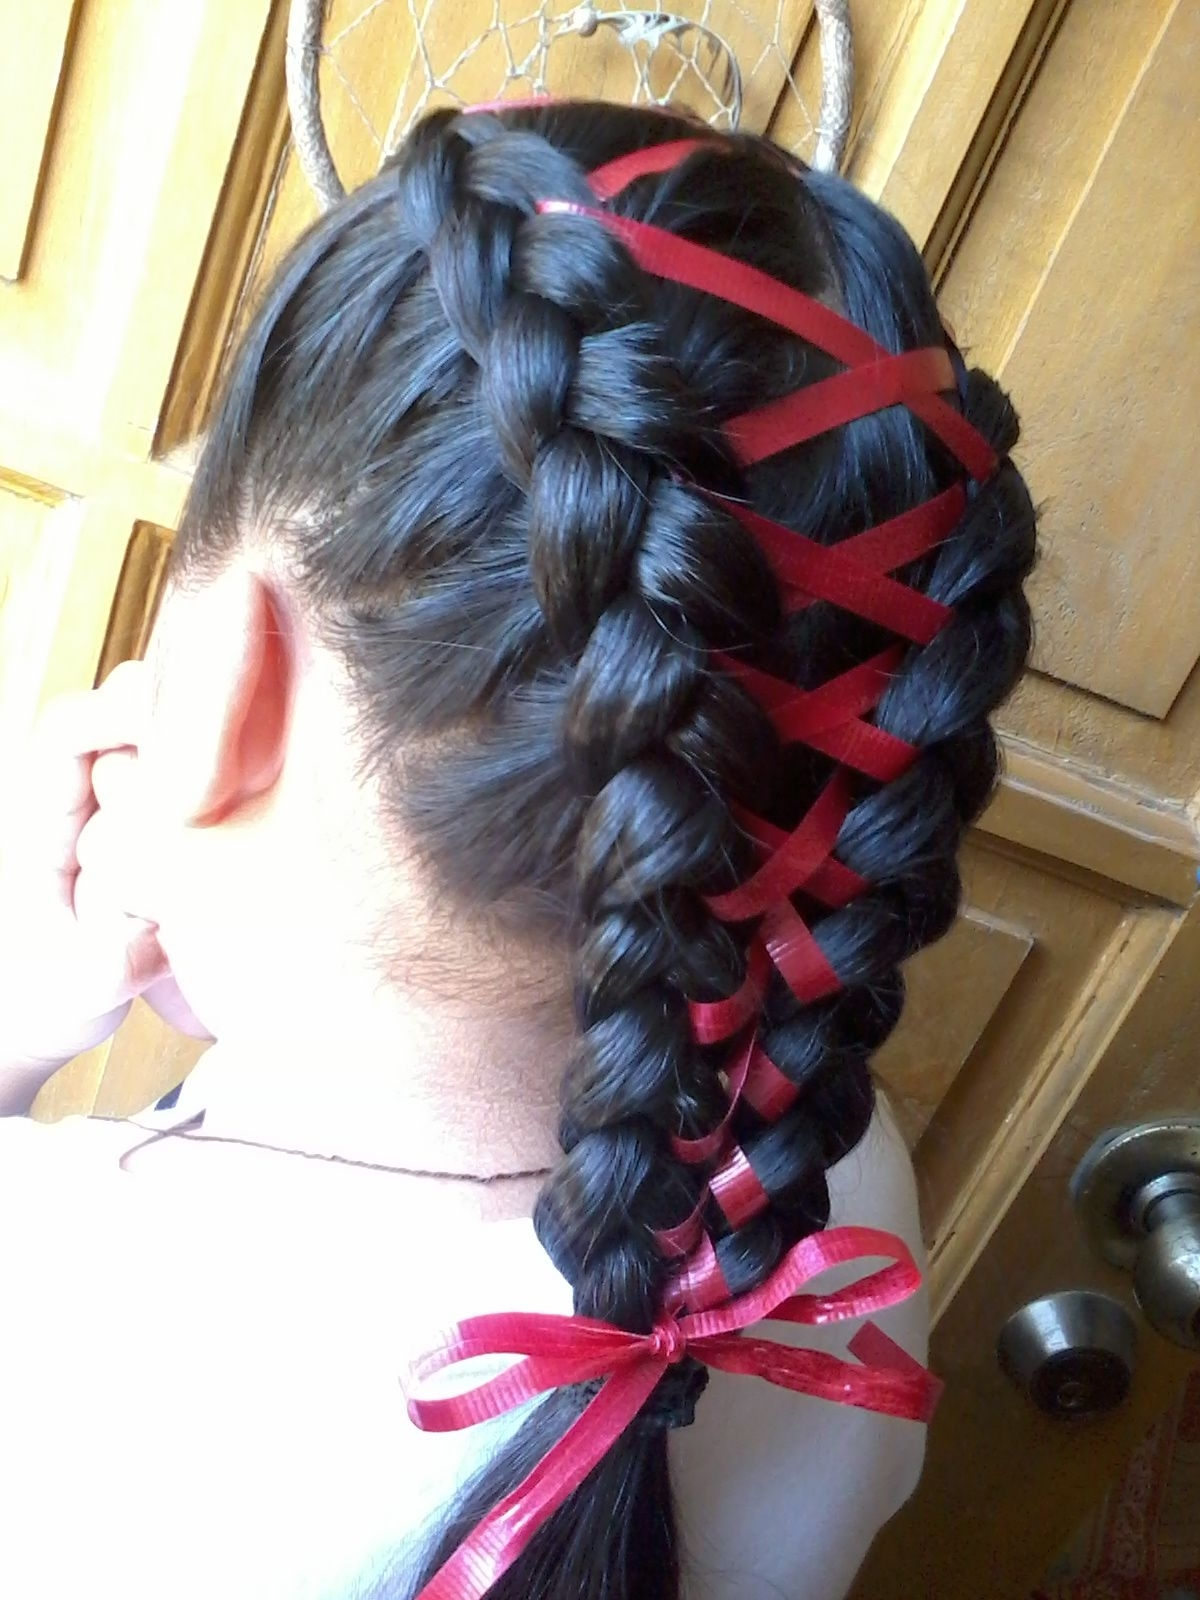 Braided Hair With Ribbon (View 5 of 20)